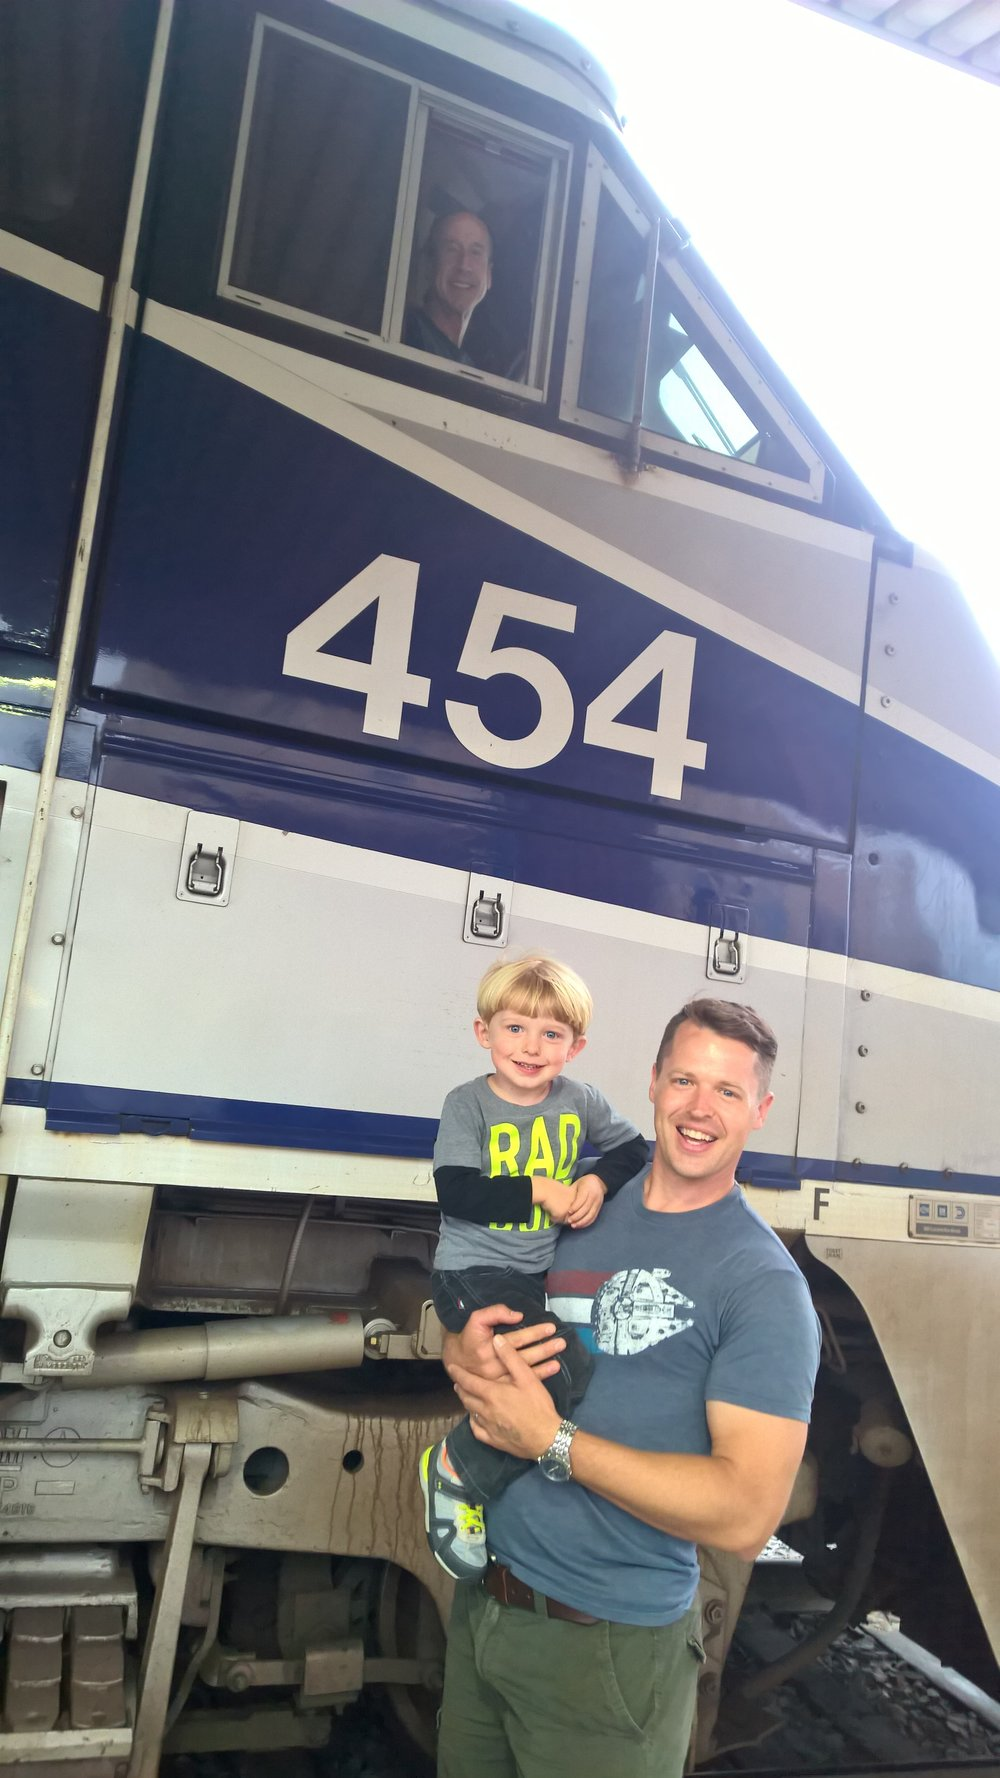 Little Noah, who loves trains, and his dad gets to meet engineer Mike who got us home safe.